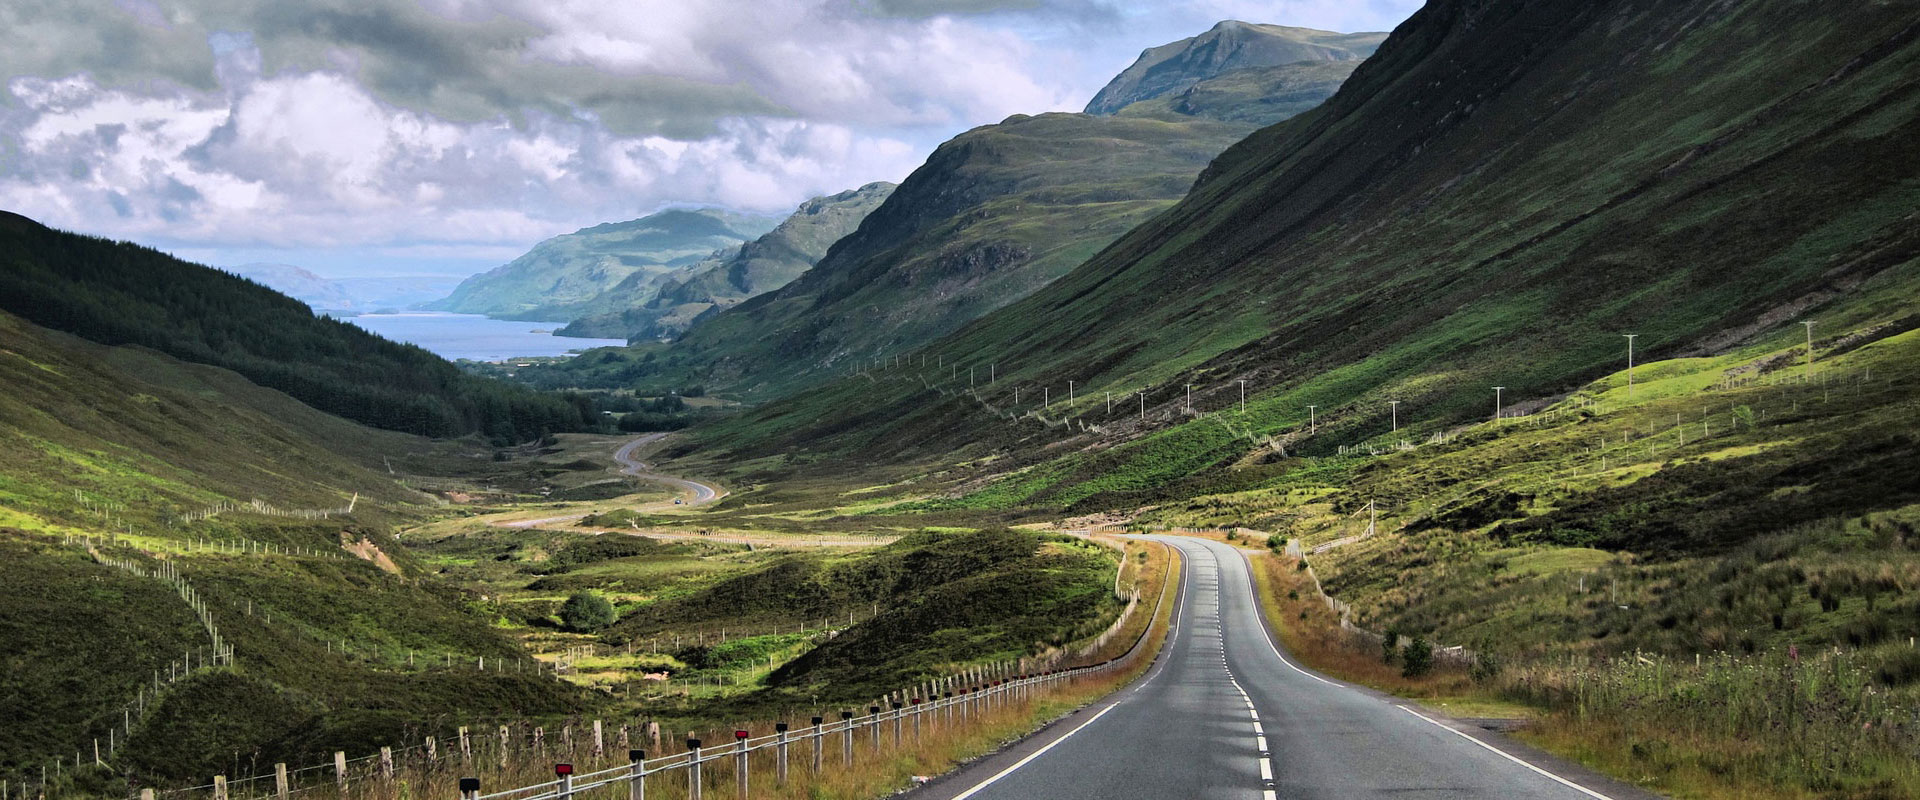 slap driving adventure, Scotland